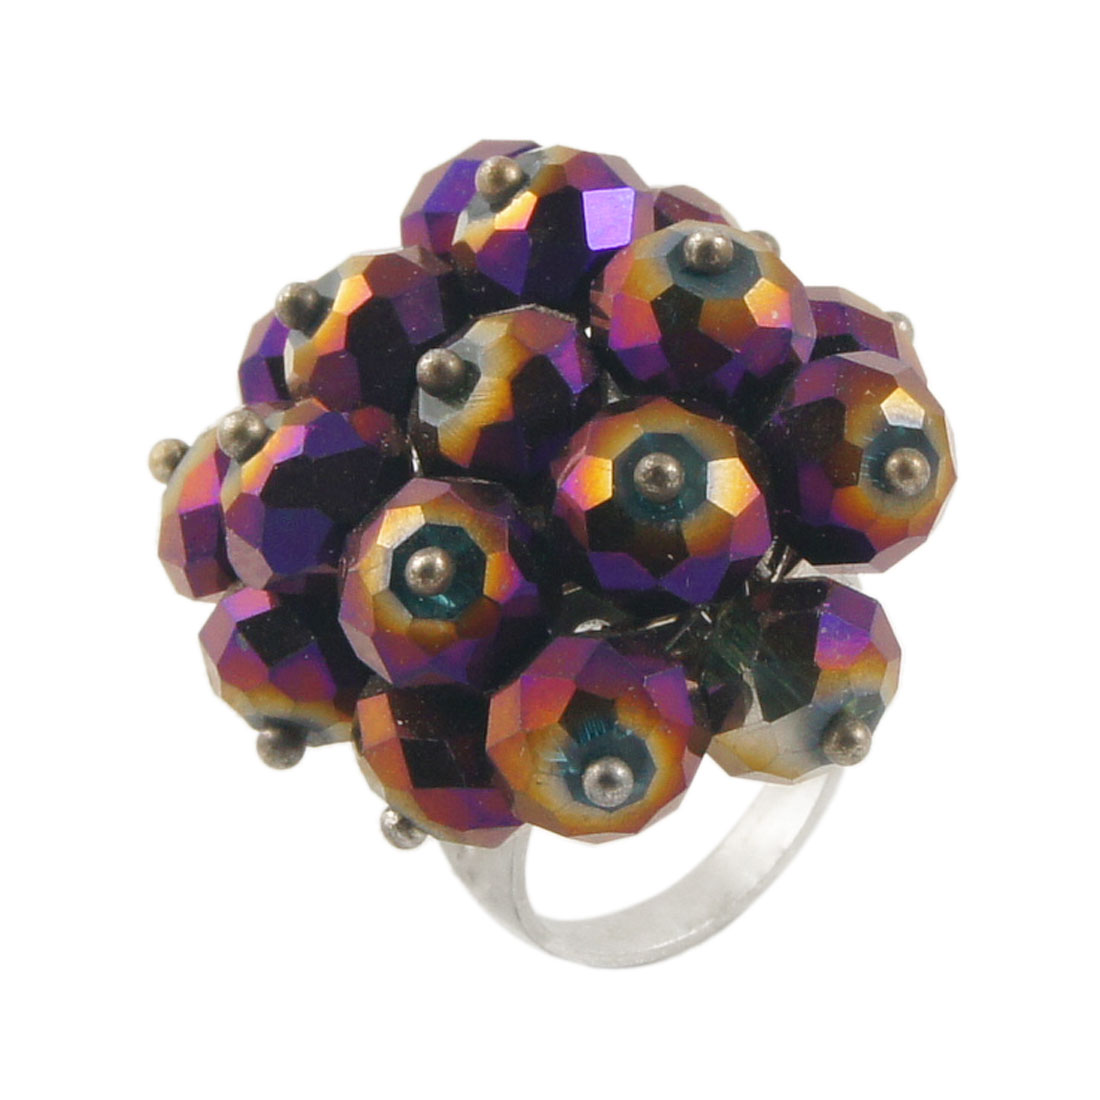 Lady Glitter Faceted Purple Round Crystal Accent Finger Ring US 6 1/4